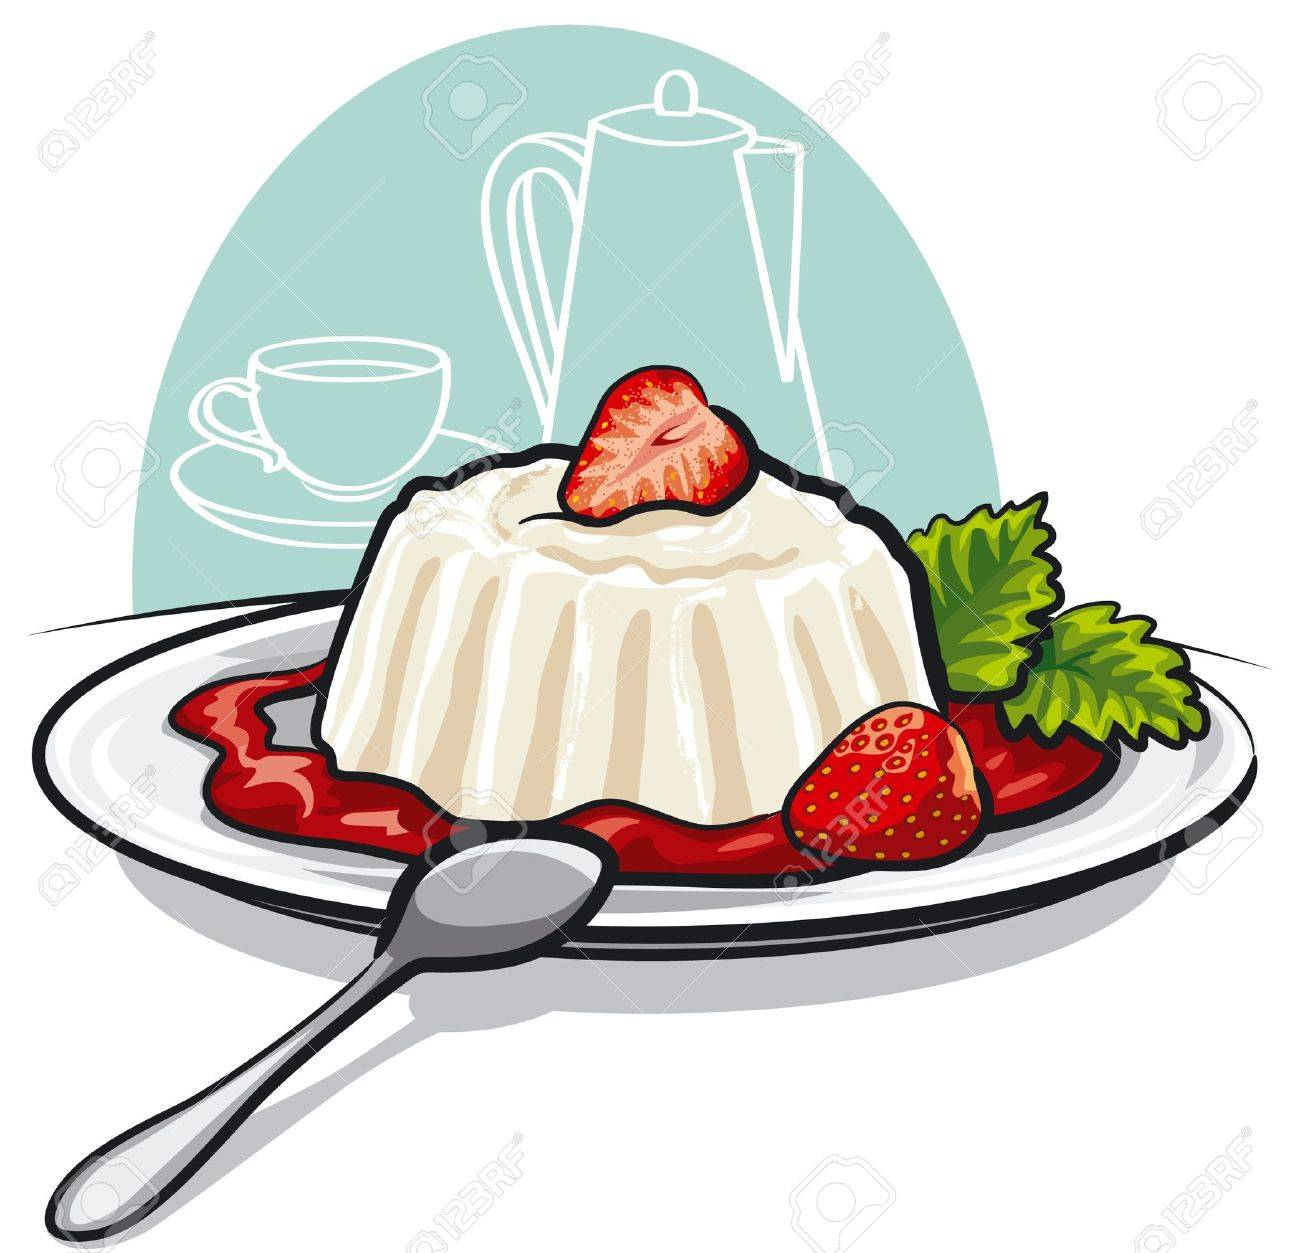 Dessert with cream and strawberries Stock Vector - 14417227